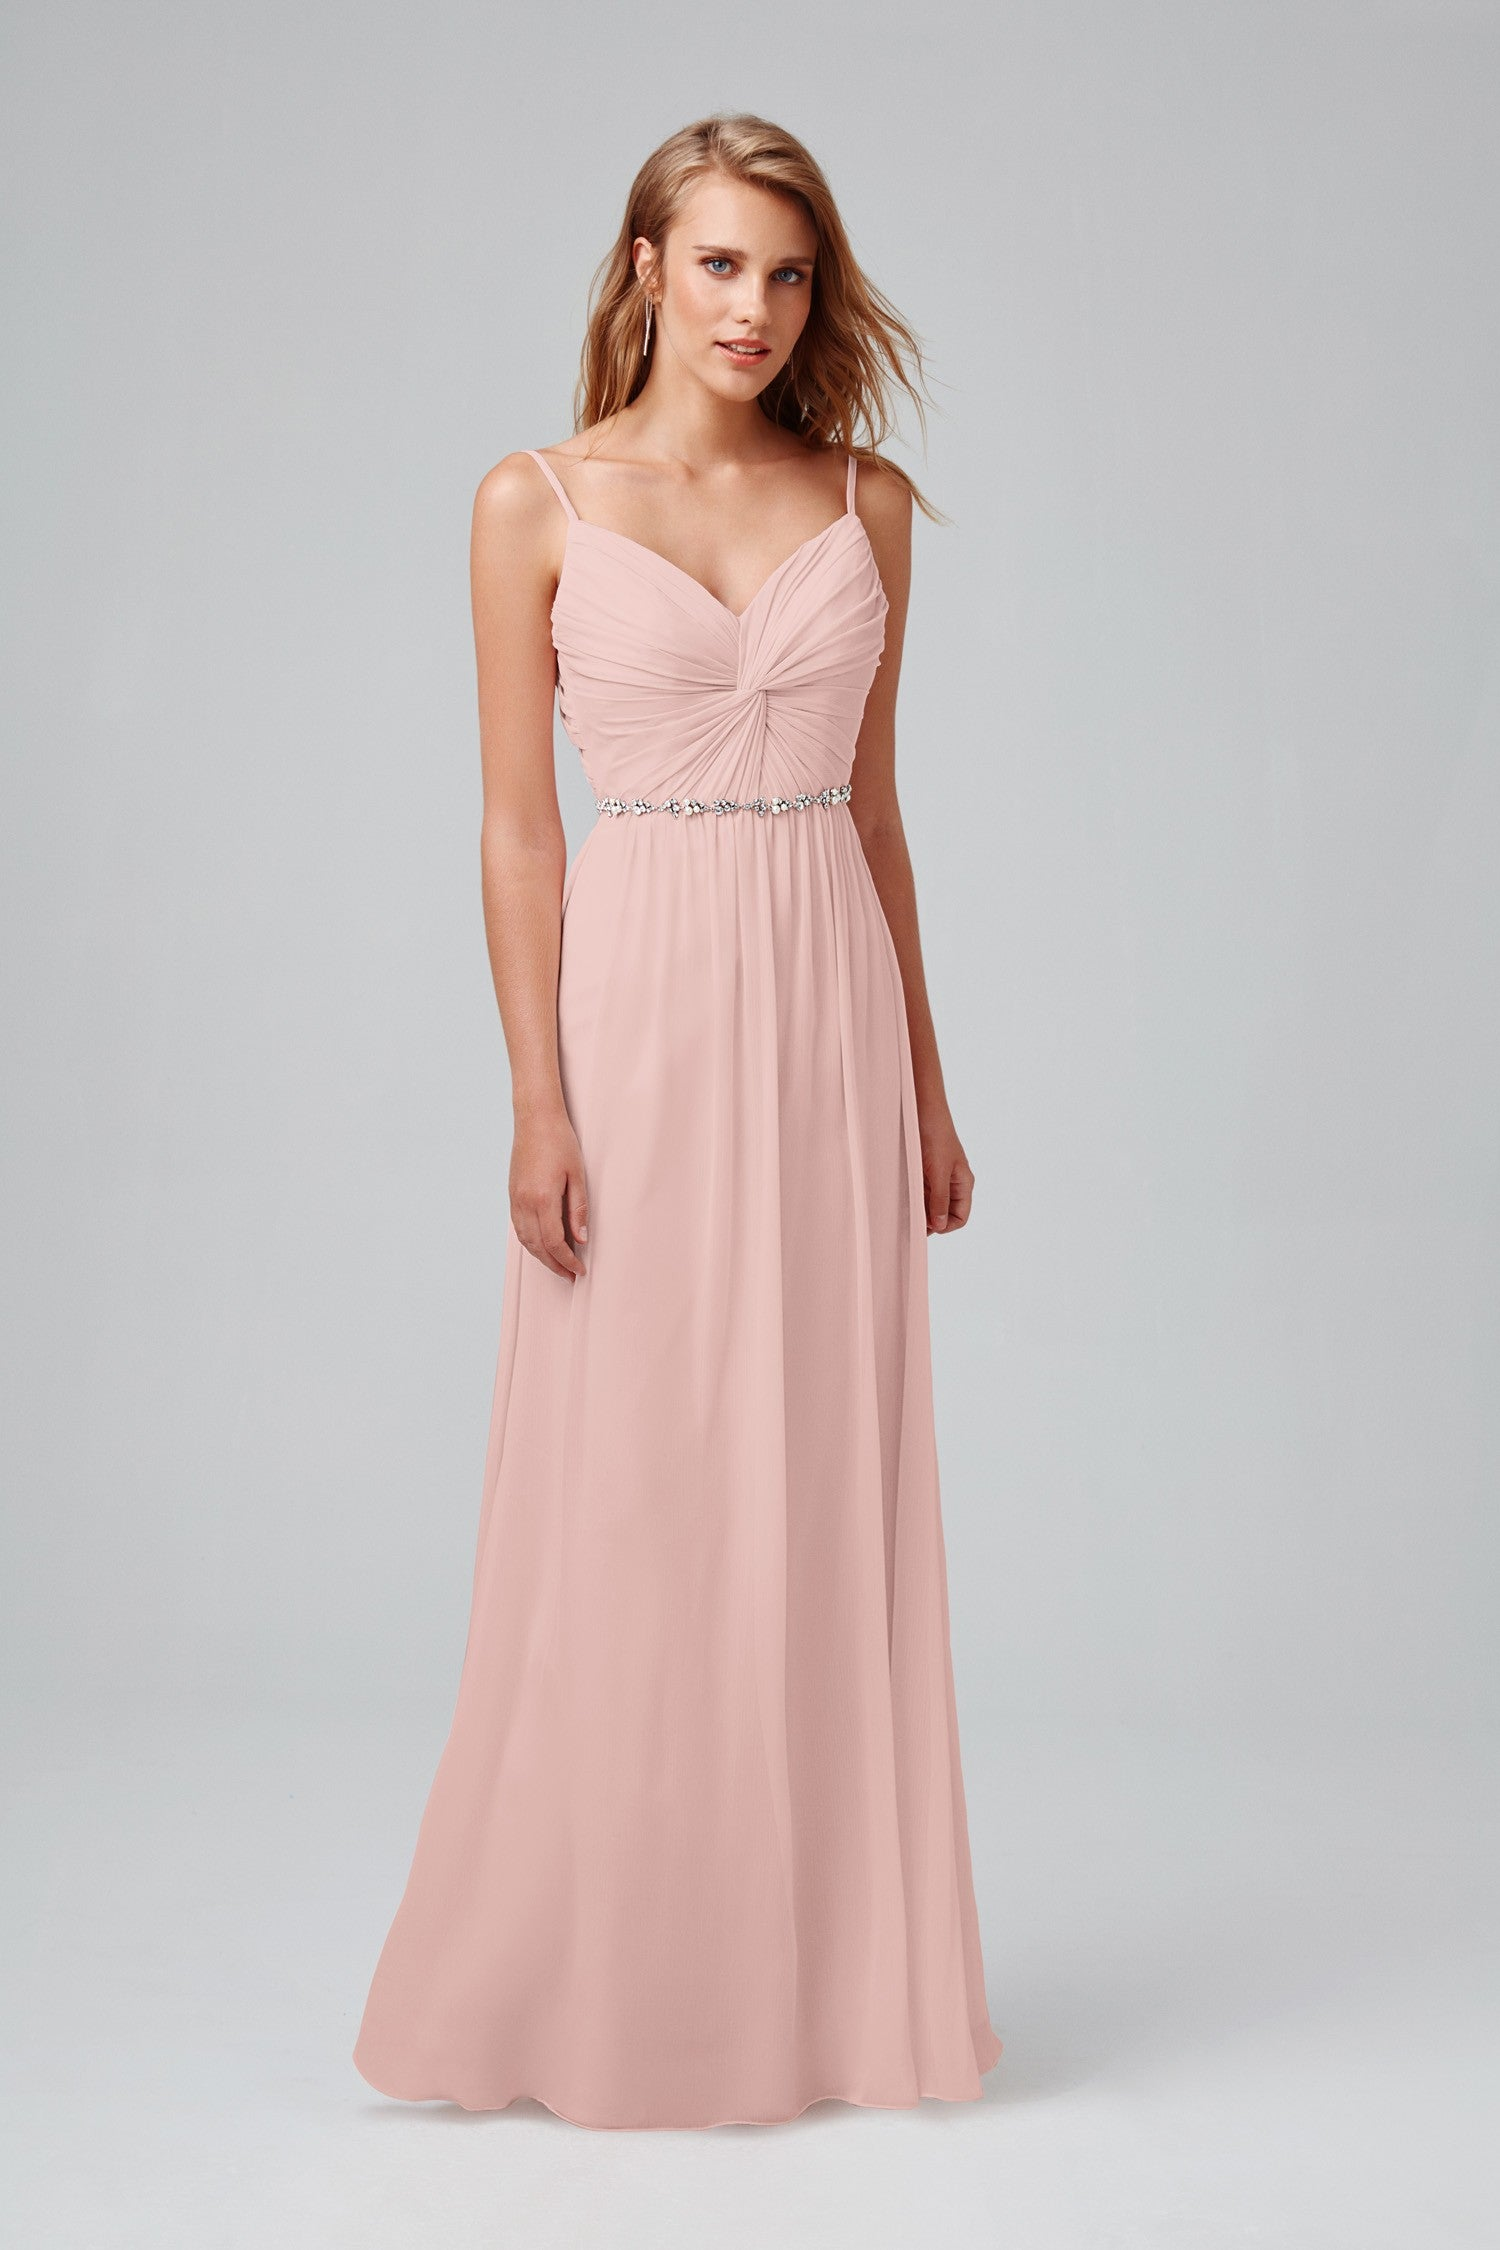 Twist Bodice Chiffon Dress with Beaded Belt-W11147